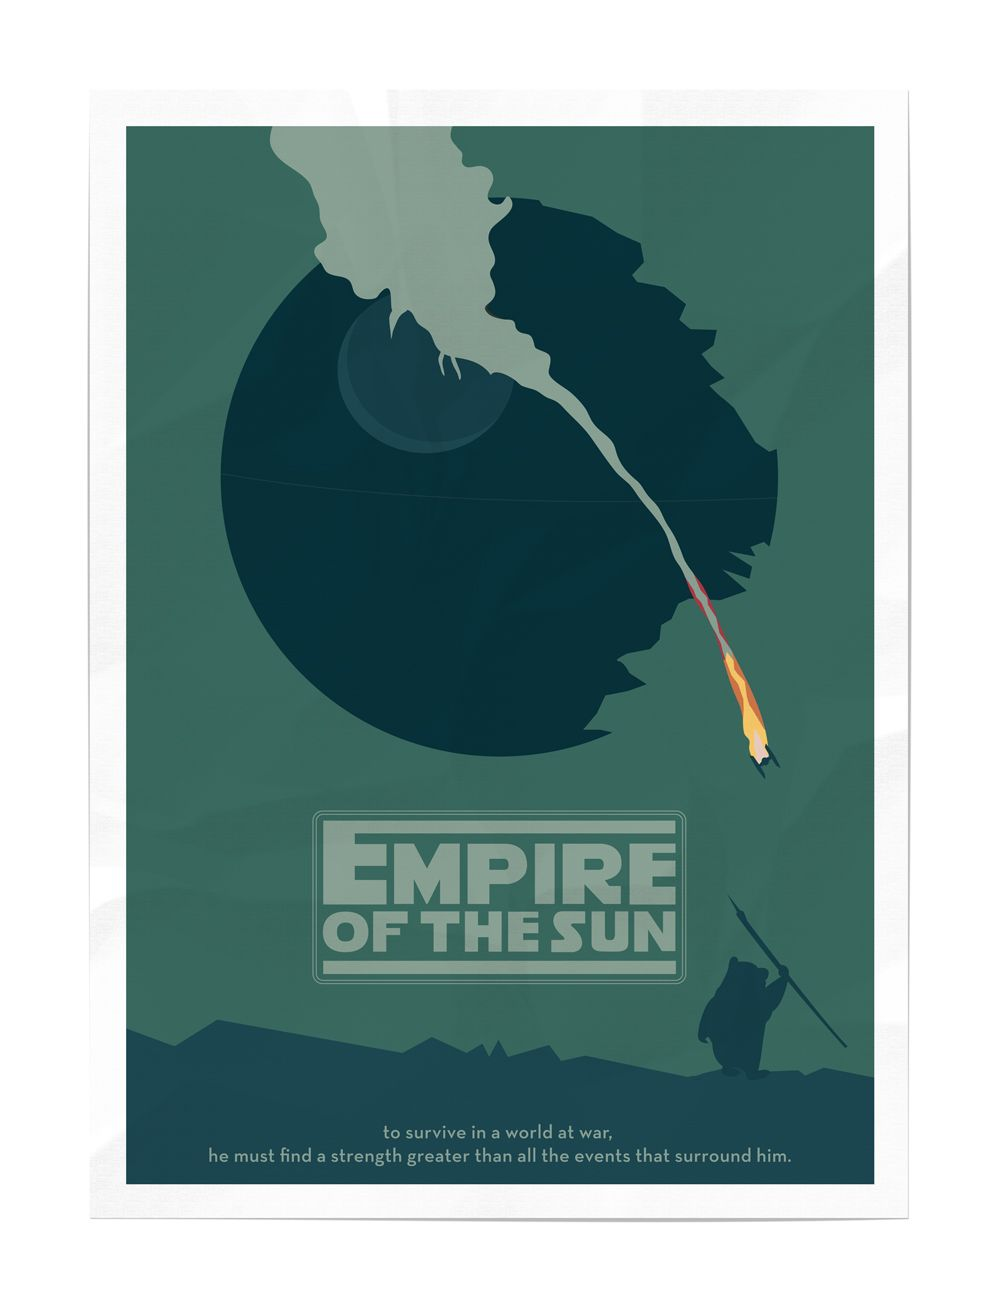 Famous Movie Posters Re-Imagined for Star Wars | Star, Movie and ...